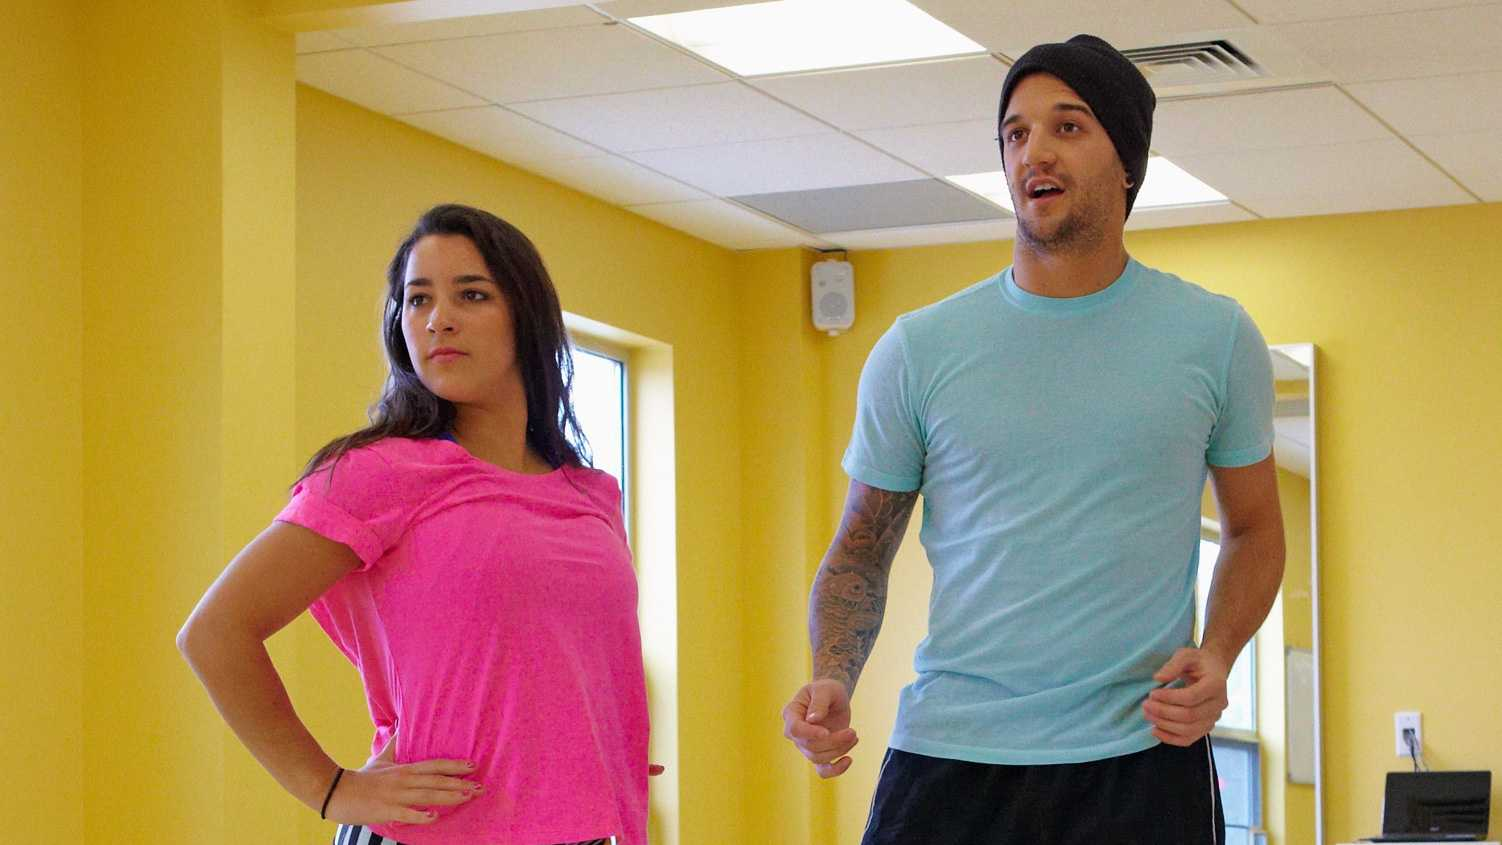 DWTS Mark Ballas Aly Raisman practice -004 sized.jpg